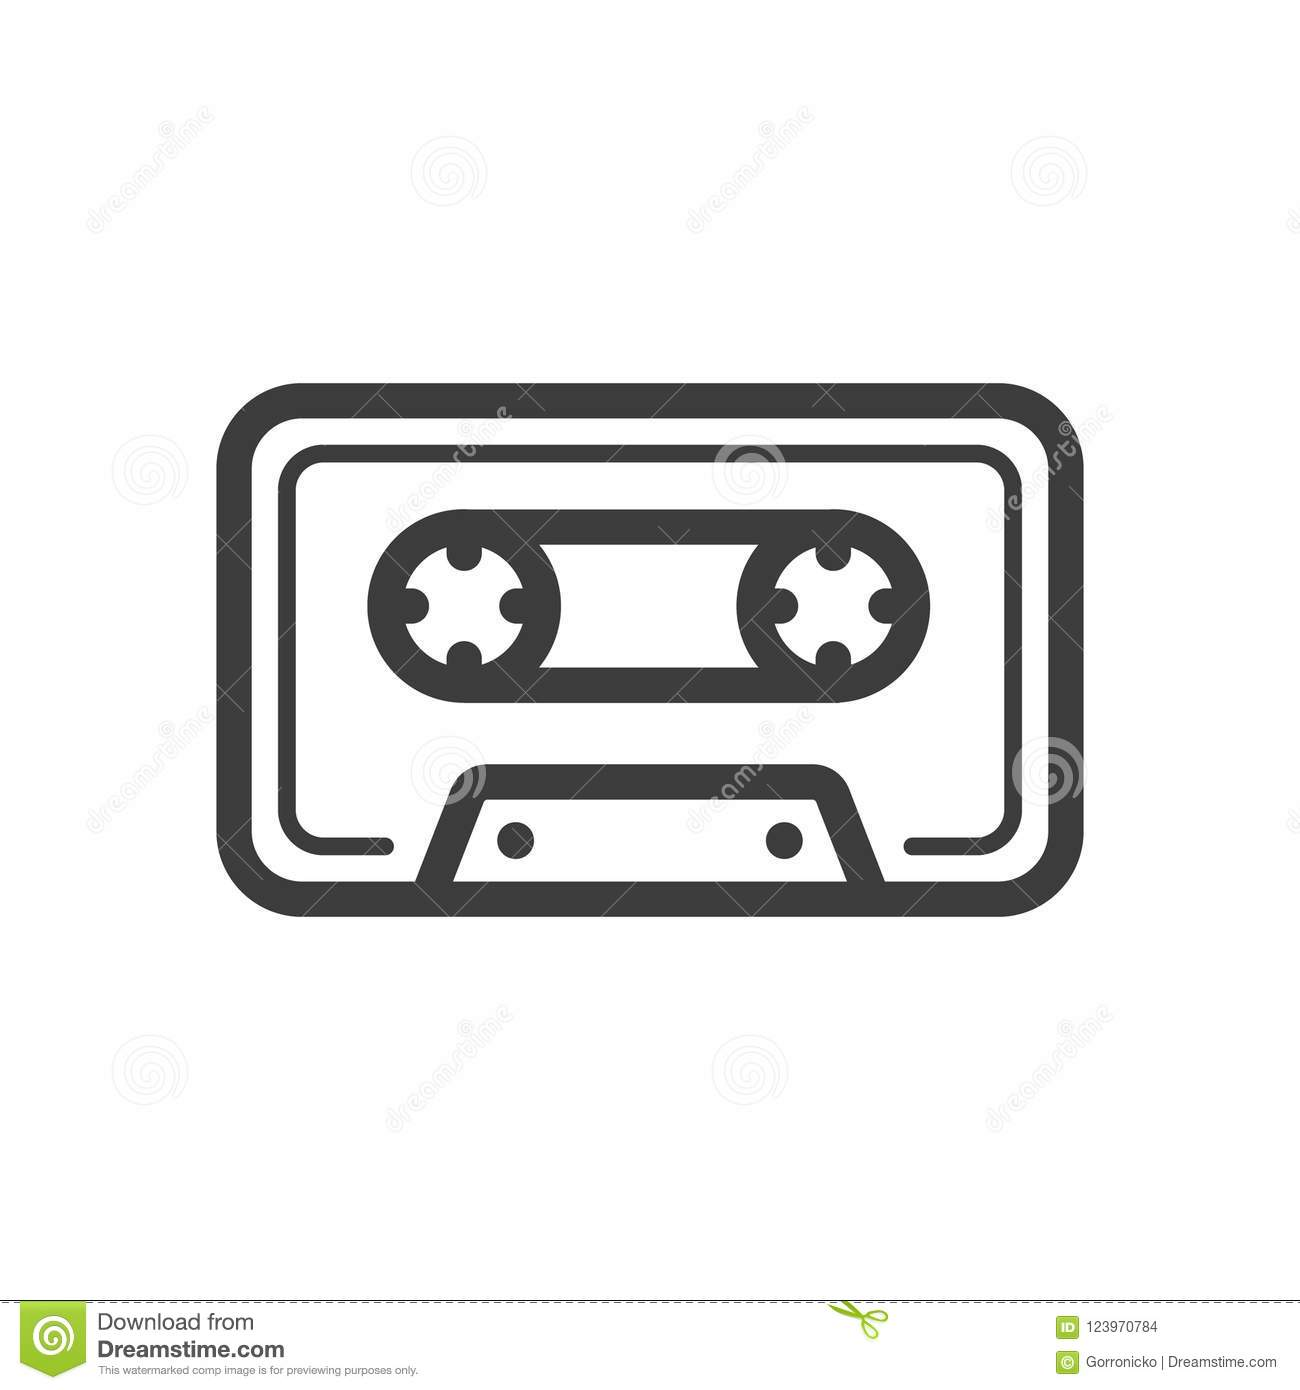 Simple Vector Line Art Icon Of Old School Music Cassette